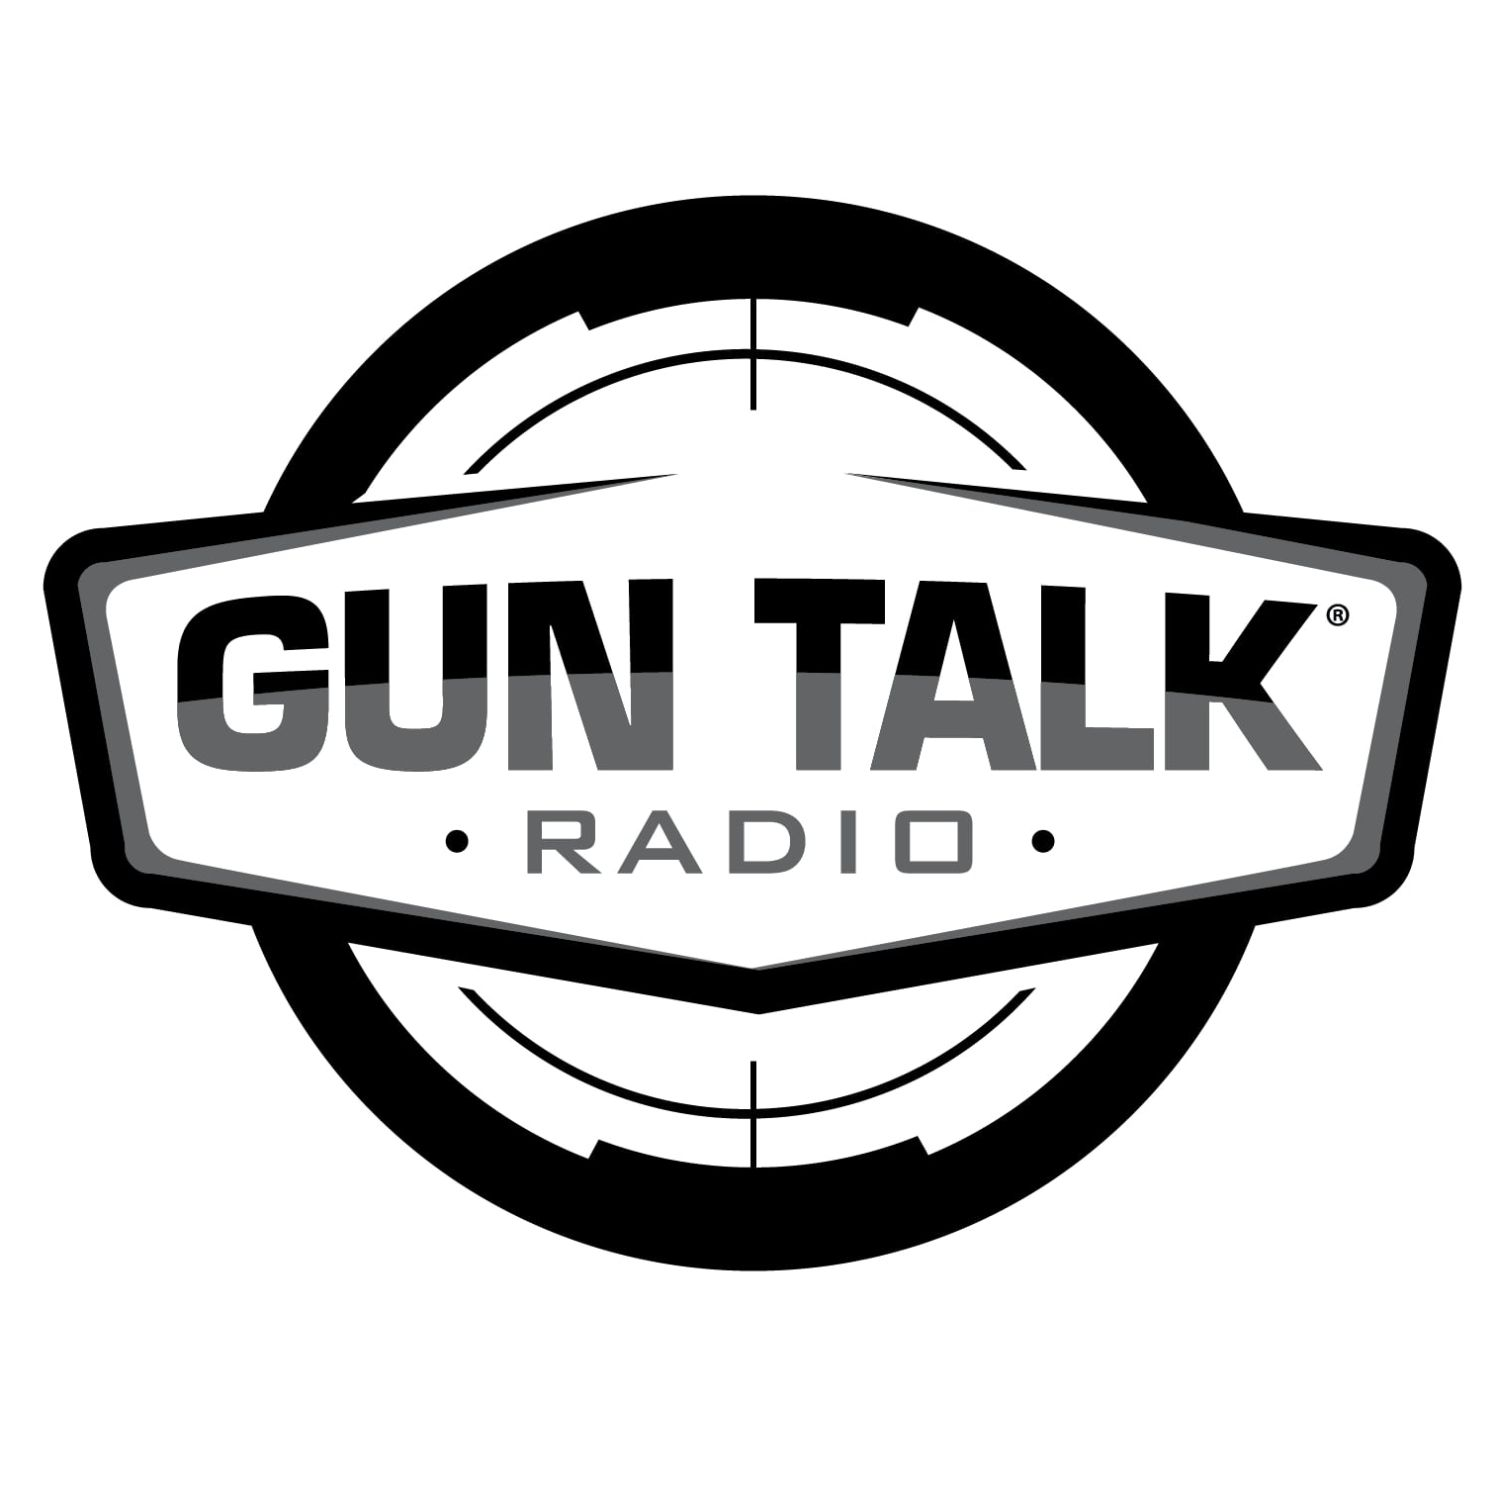 Artwork for Guntalk 2009-12-20 Part B